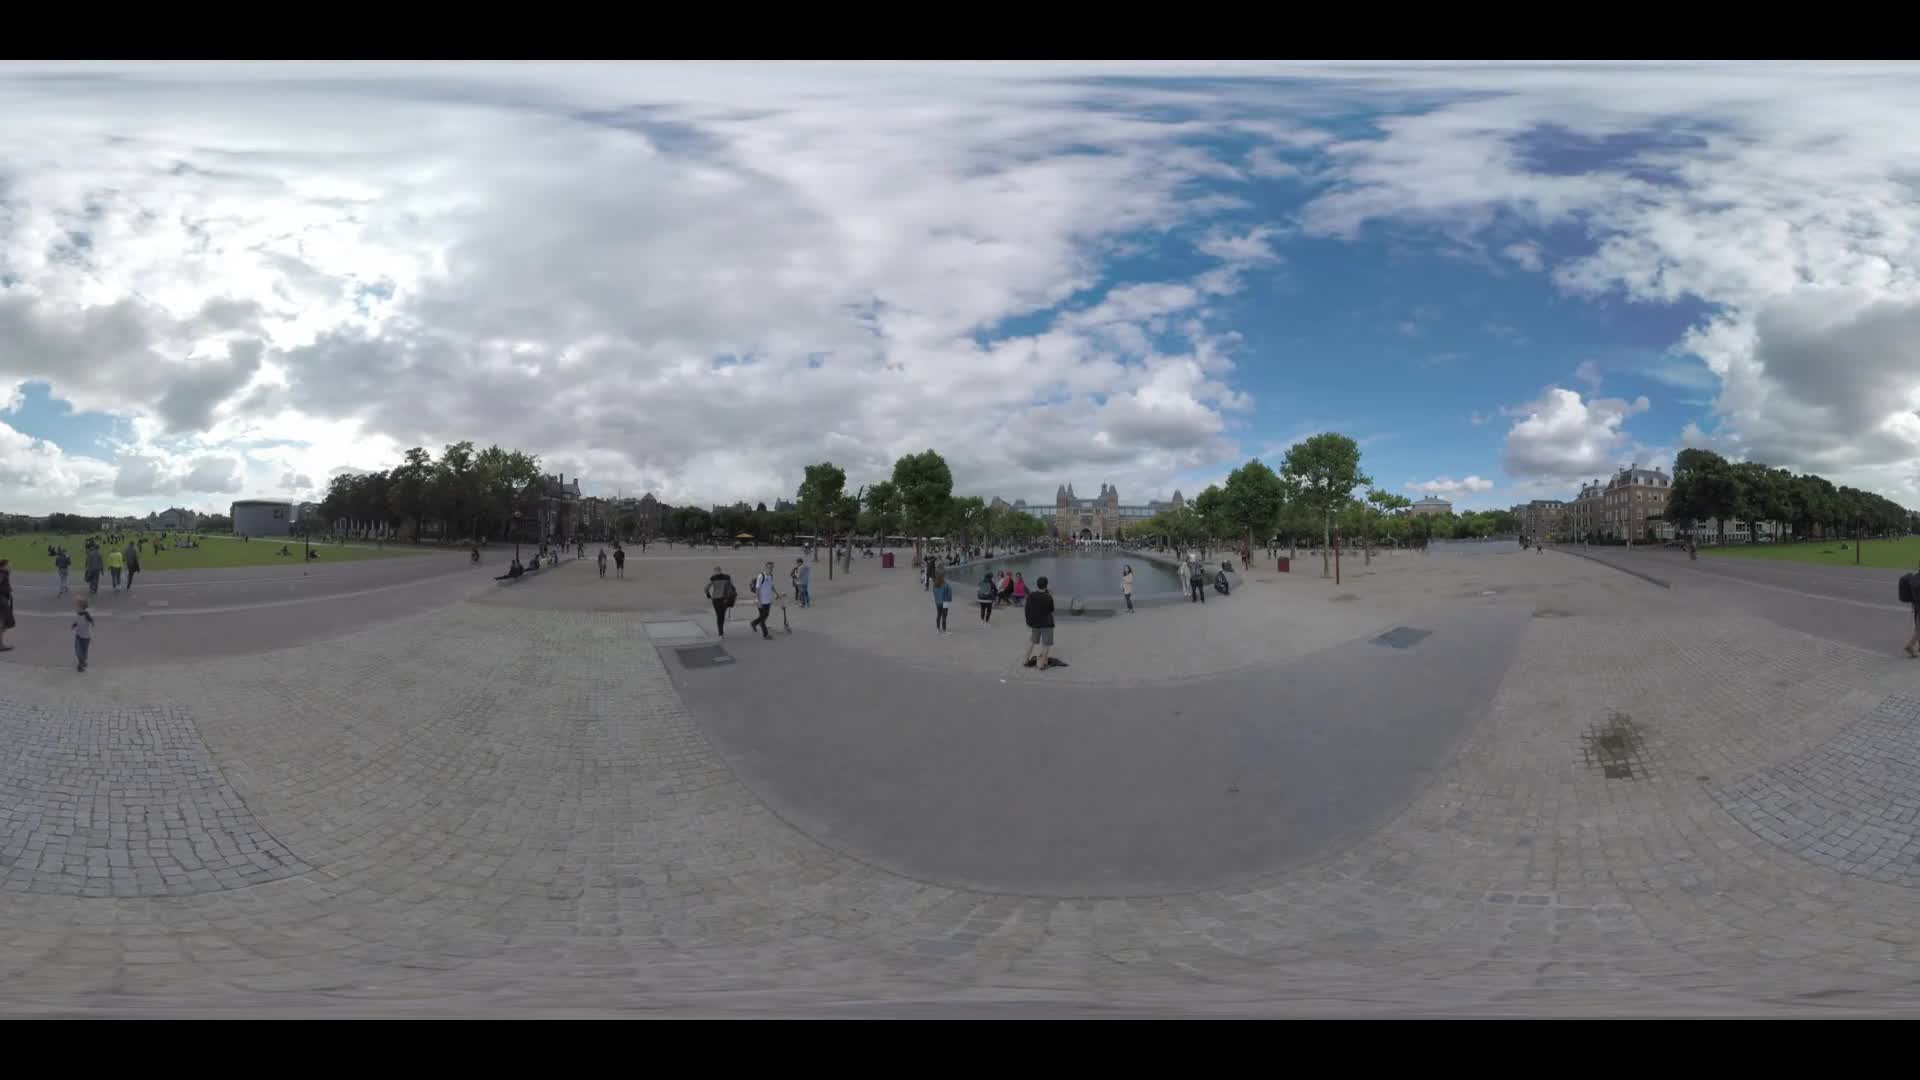 AMSTERDAM, NETHERLANDS - AUGUST 09, 2016: 360 VR video. City view with Rijksmuseum and people walking at Art Square and green Museumplein